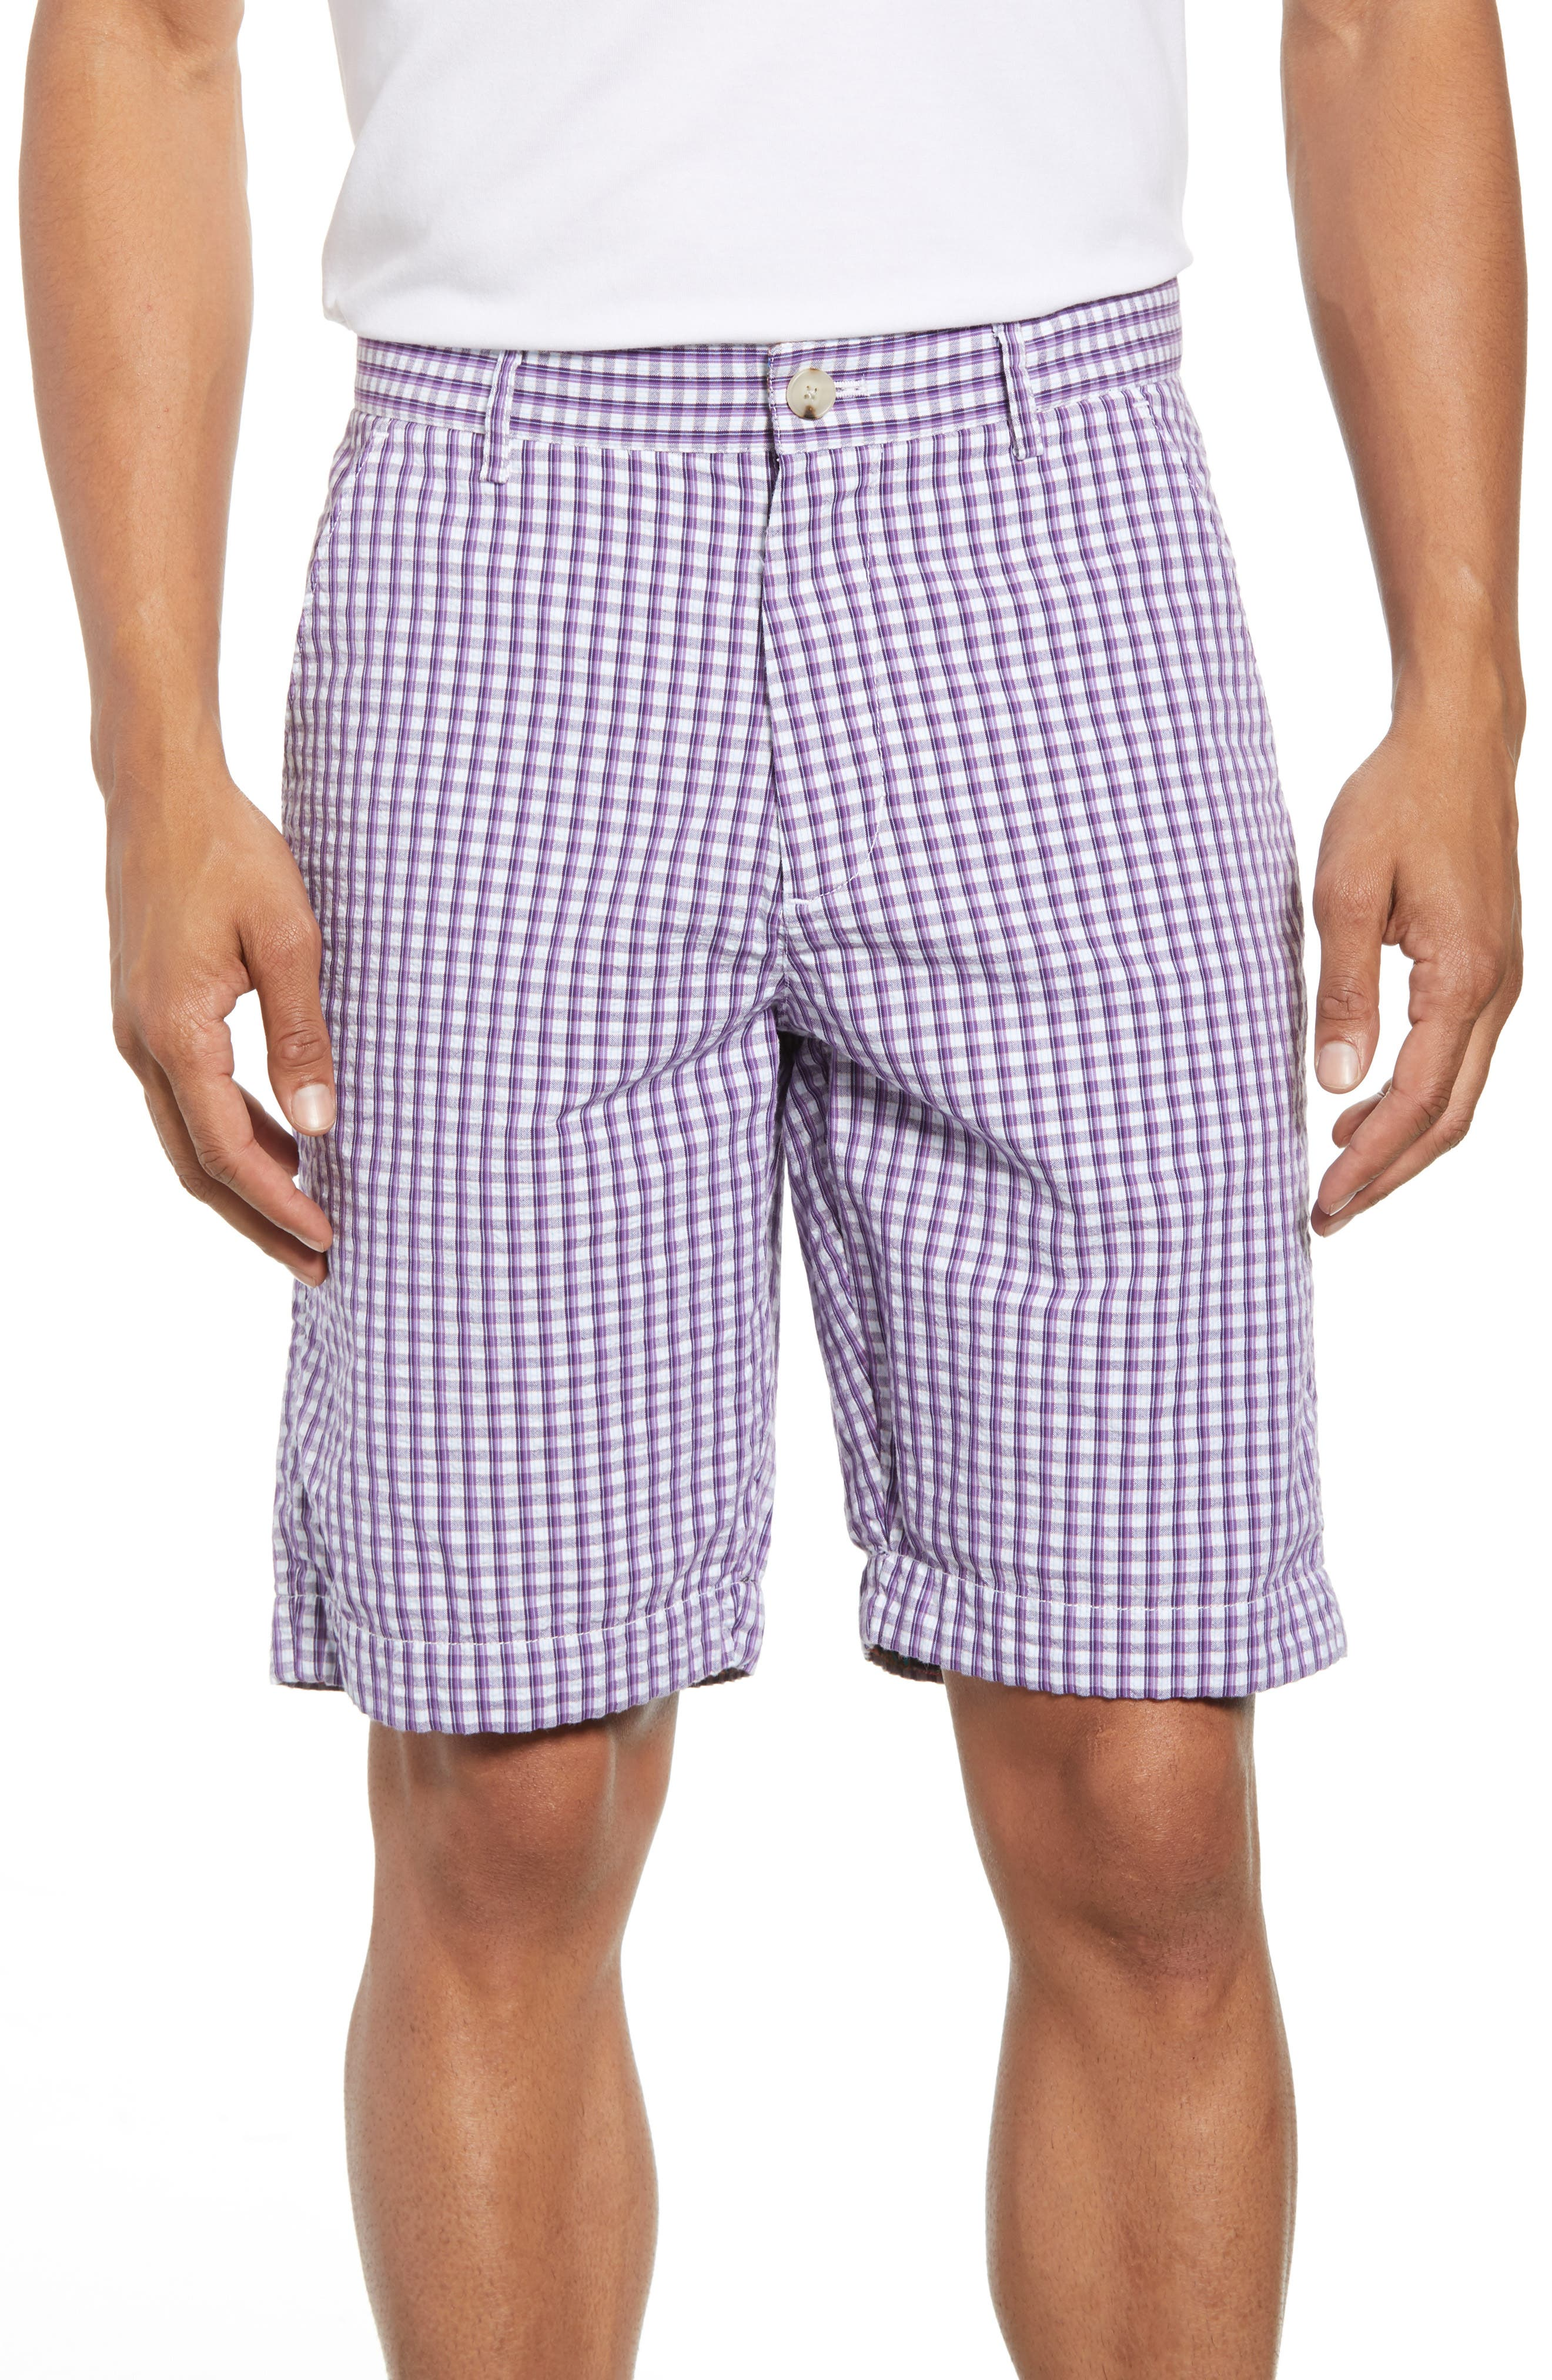 Melendez Classic Fit Shorts,                         Main,                         color, RED